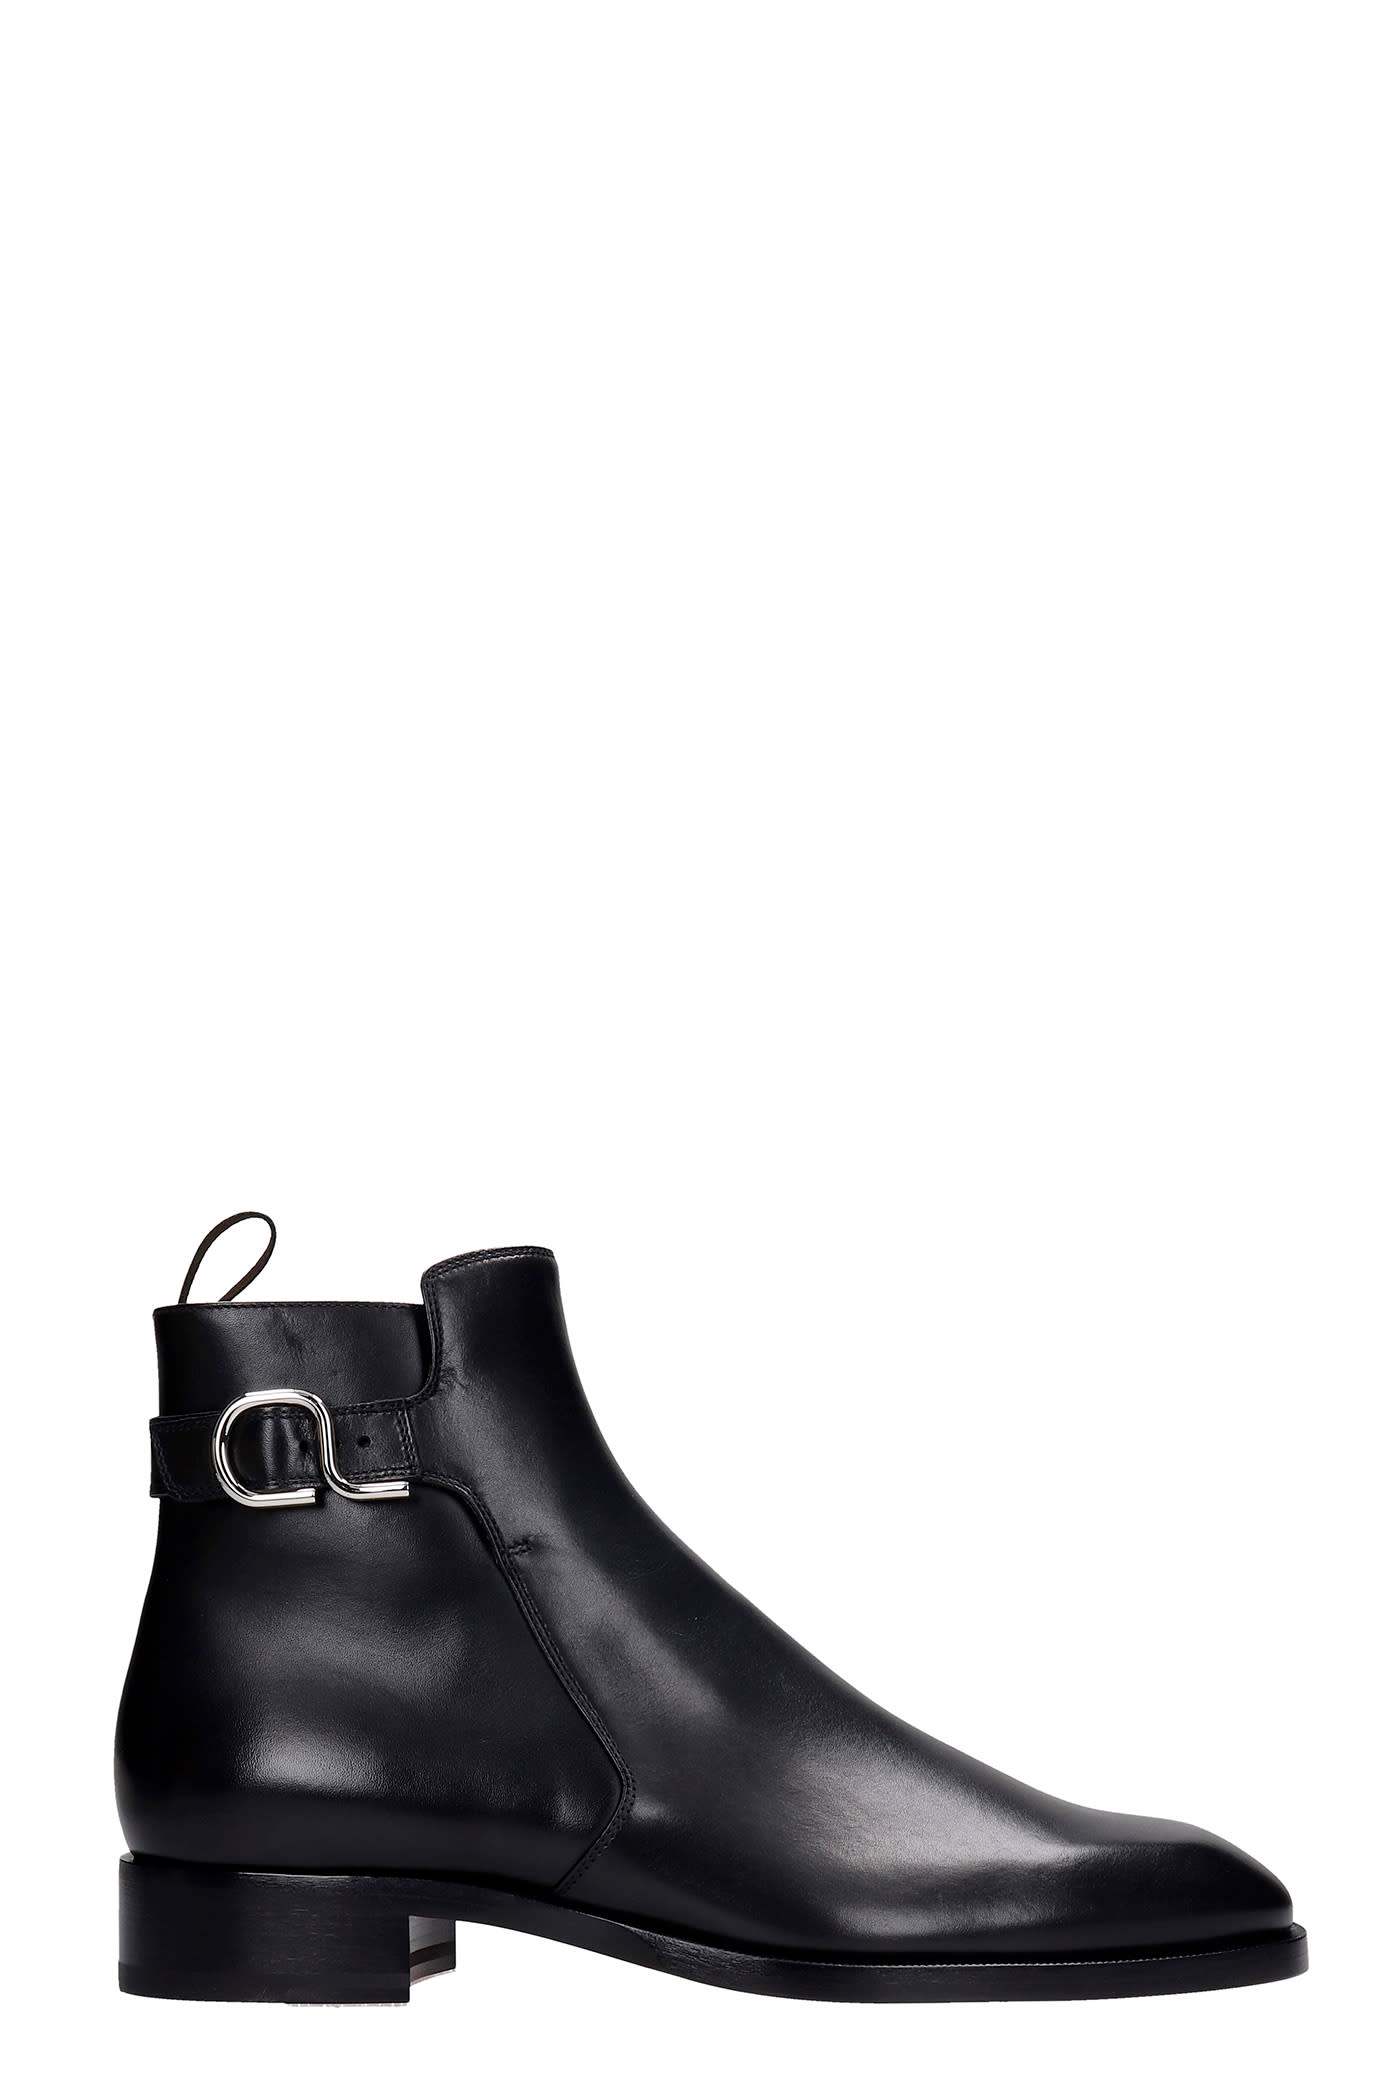 Christian Louboutin VALIDO LOW HEELS ANKLE BOOTS IN BLACK LEATHER